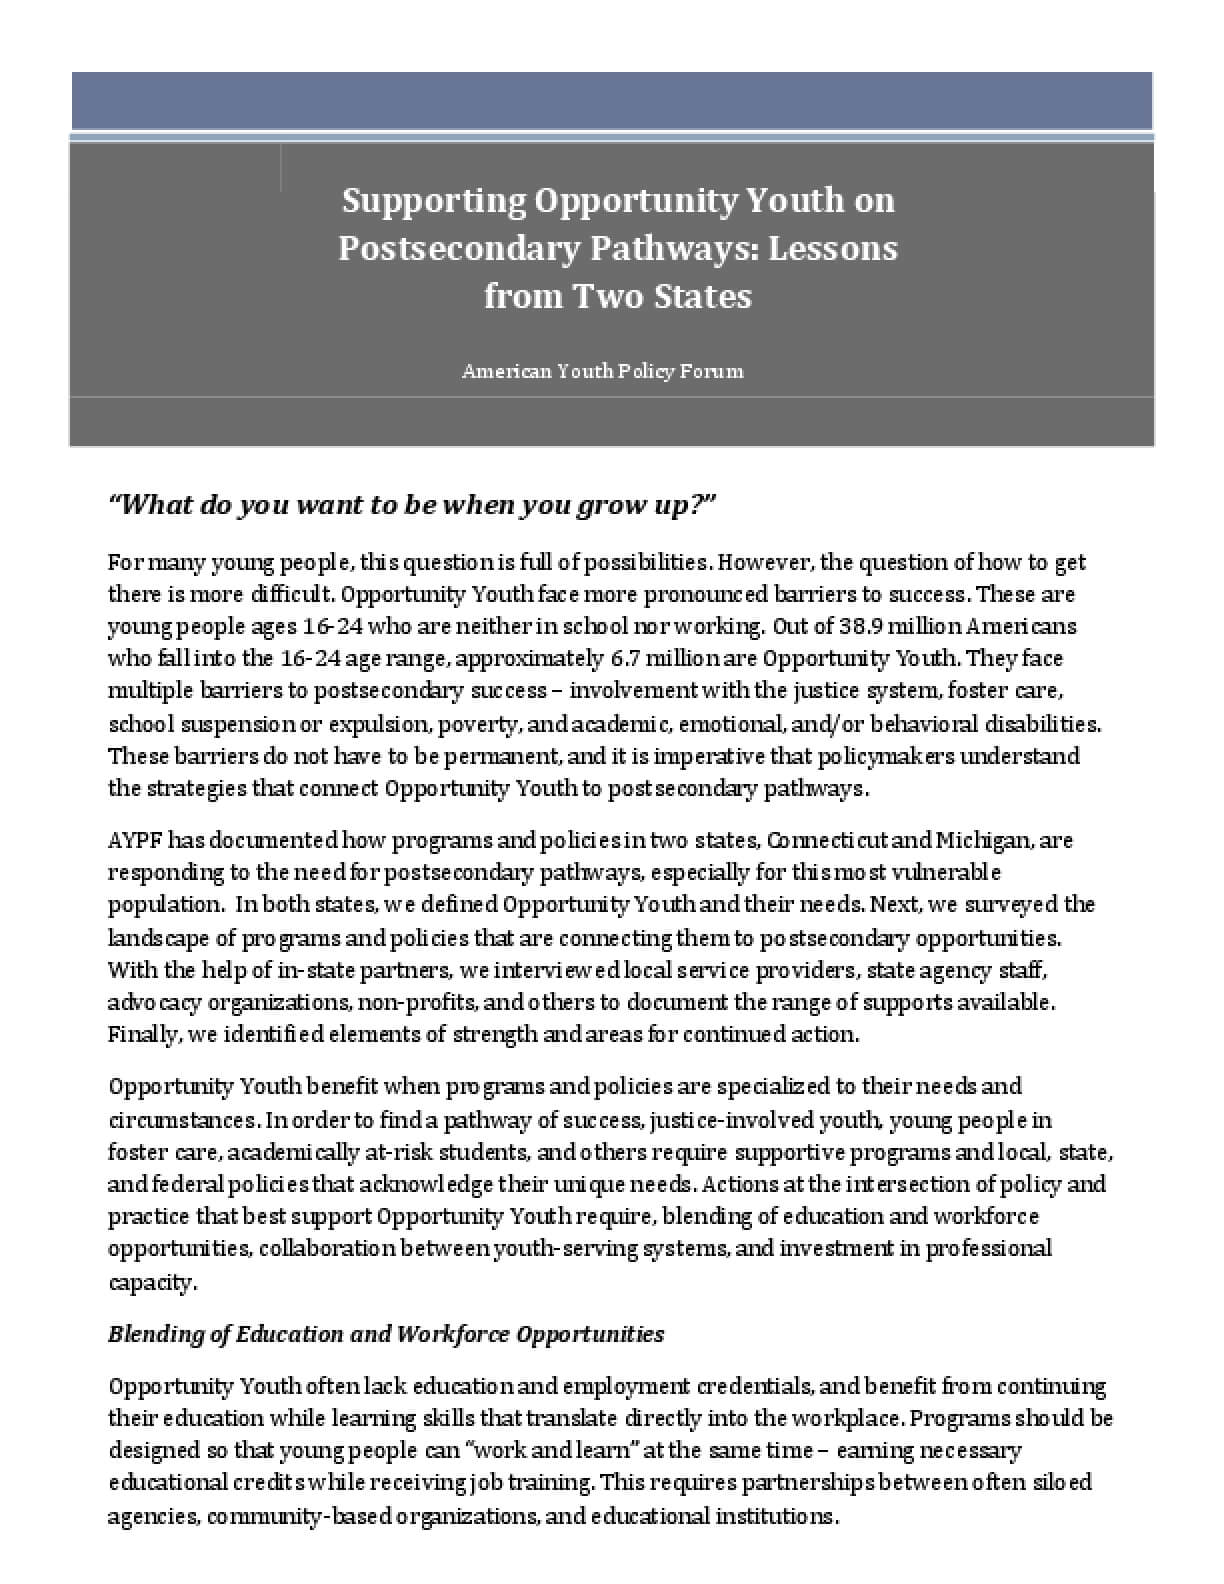 Supporting Opportunity Youth on Postsecondary Pathways: Lessons from Two States